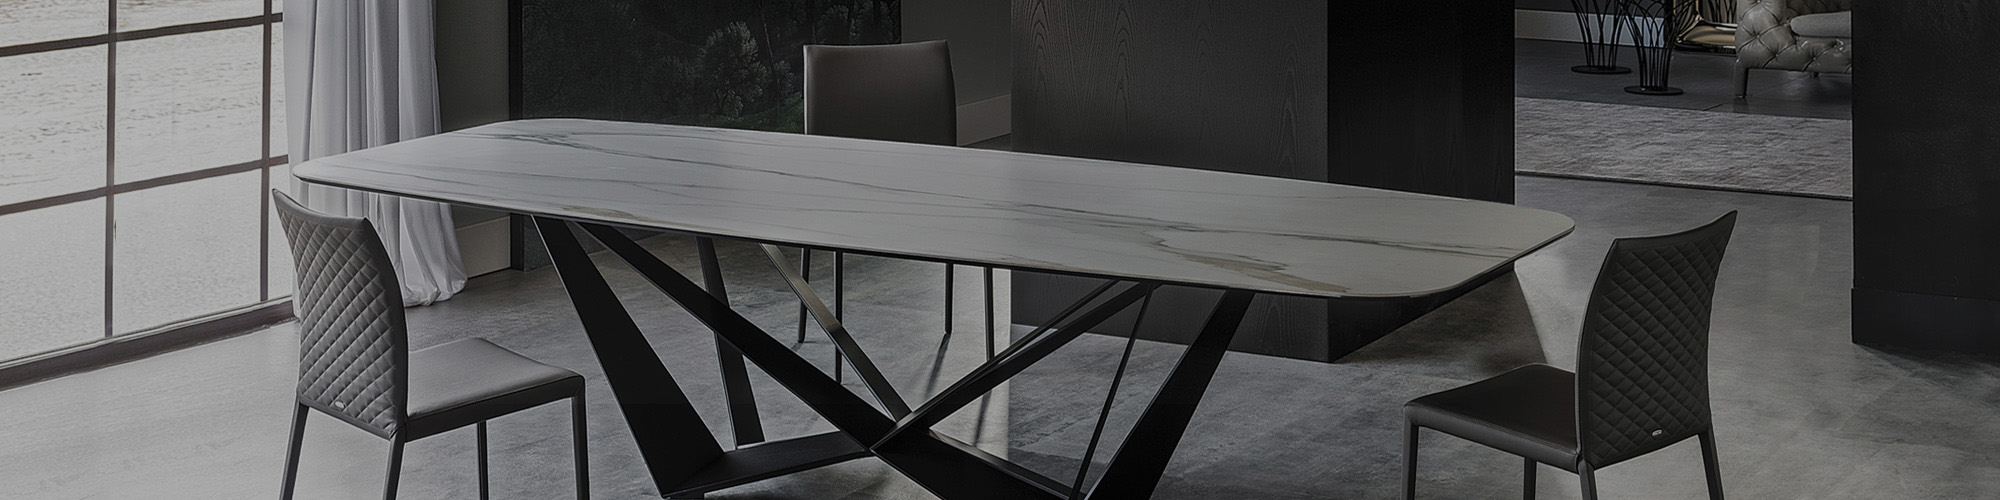 Cattelan Italia Furniture by FCI London